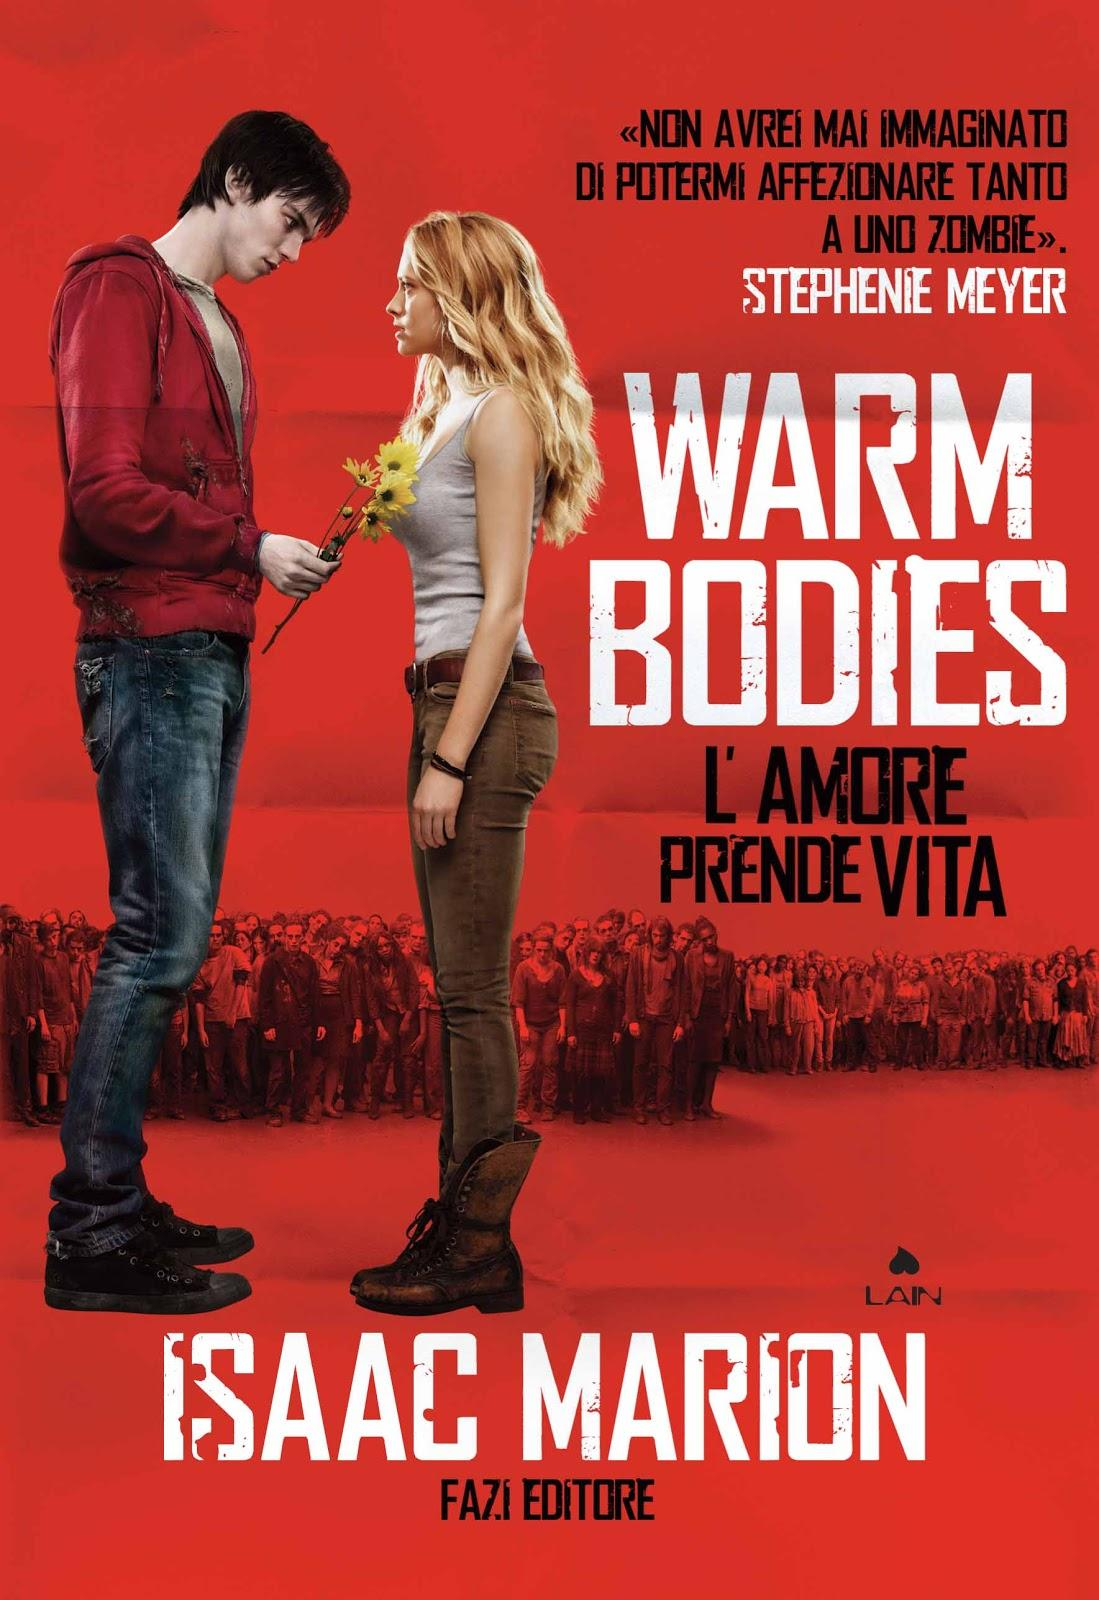 warm bodies by issac marion Isaac marion grew up in the mossy depths of the pacific northwest, where he worked as a heating installer, a security guard, and a visitation supervisor for foster children before publishing his debut novel in 2010.